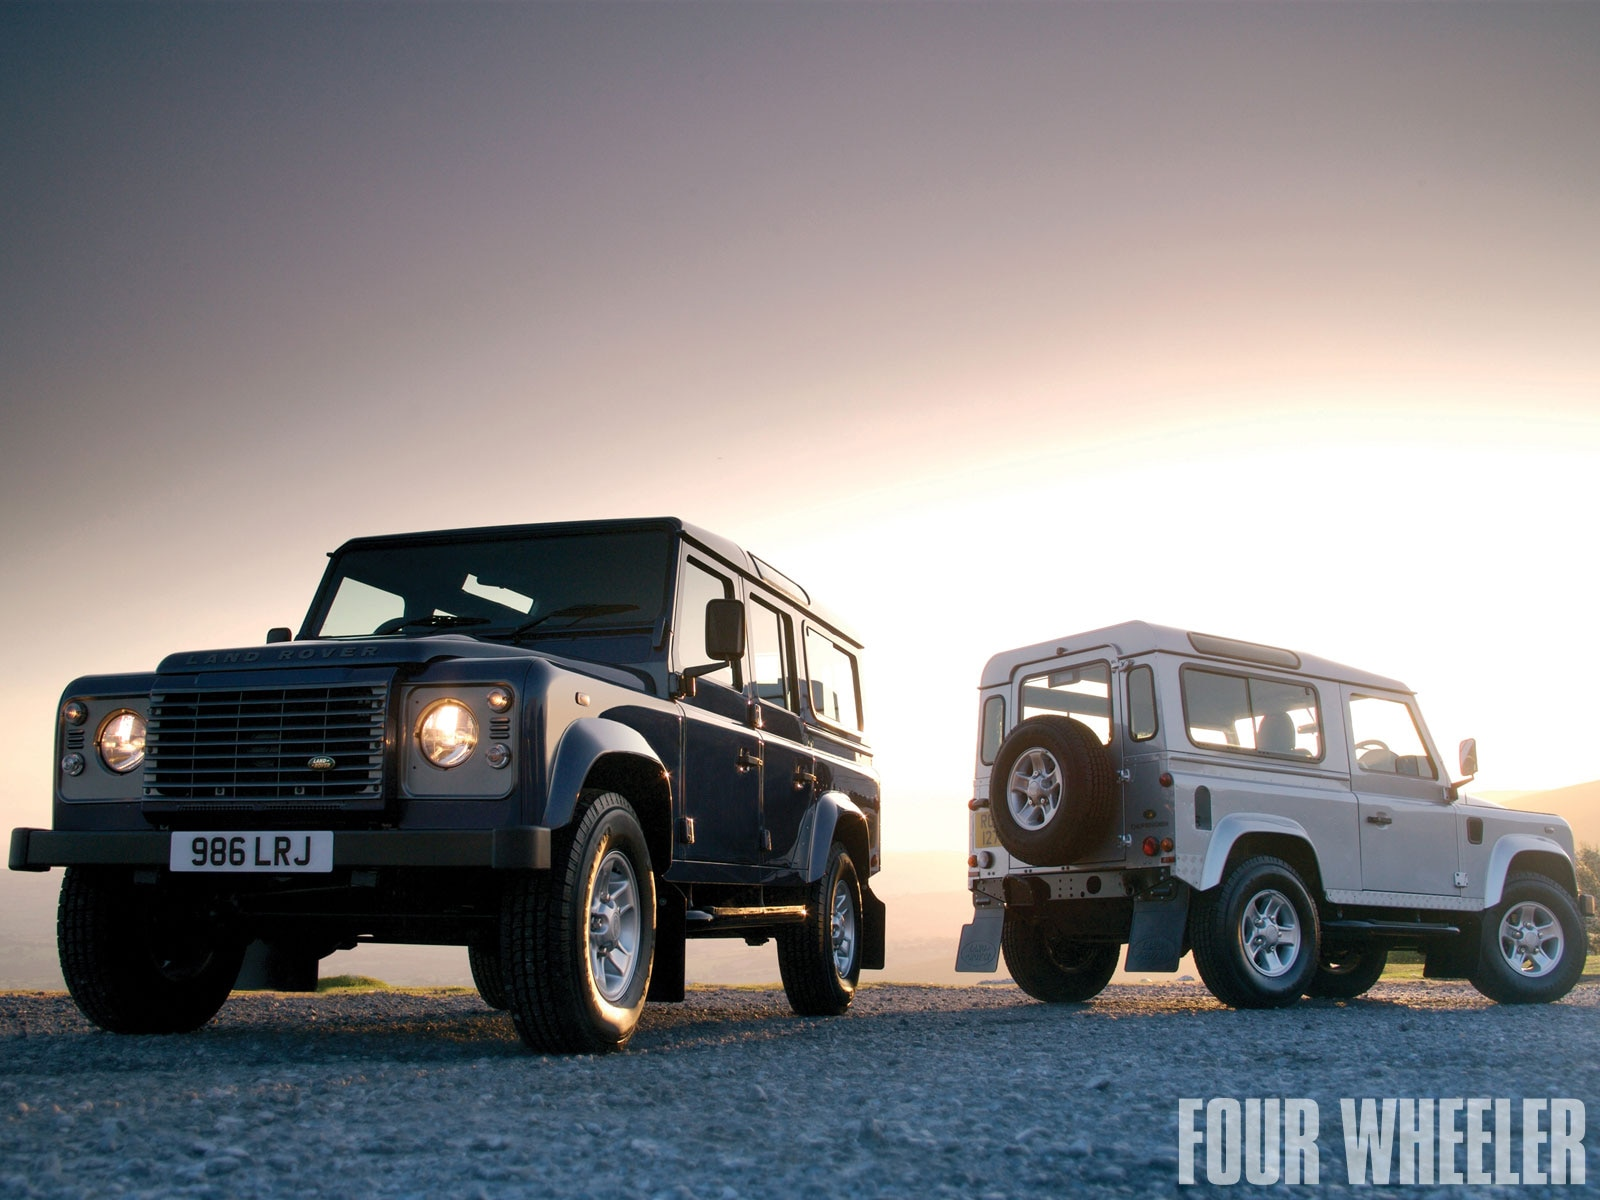 129 1007 04+july 2010 rpm+land rover defender